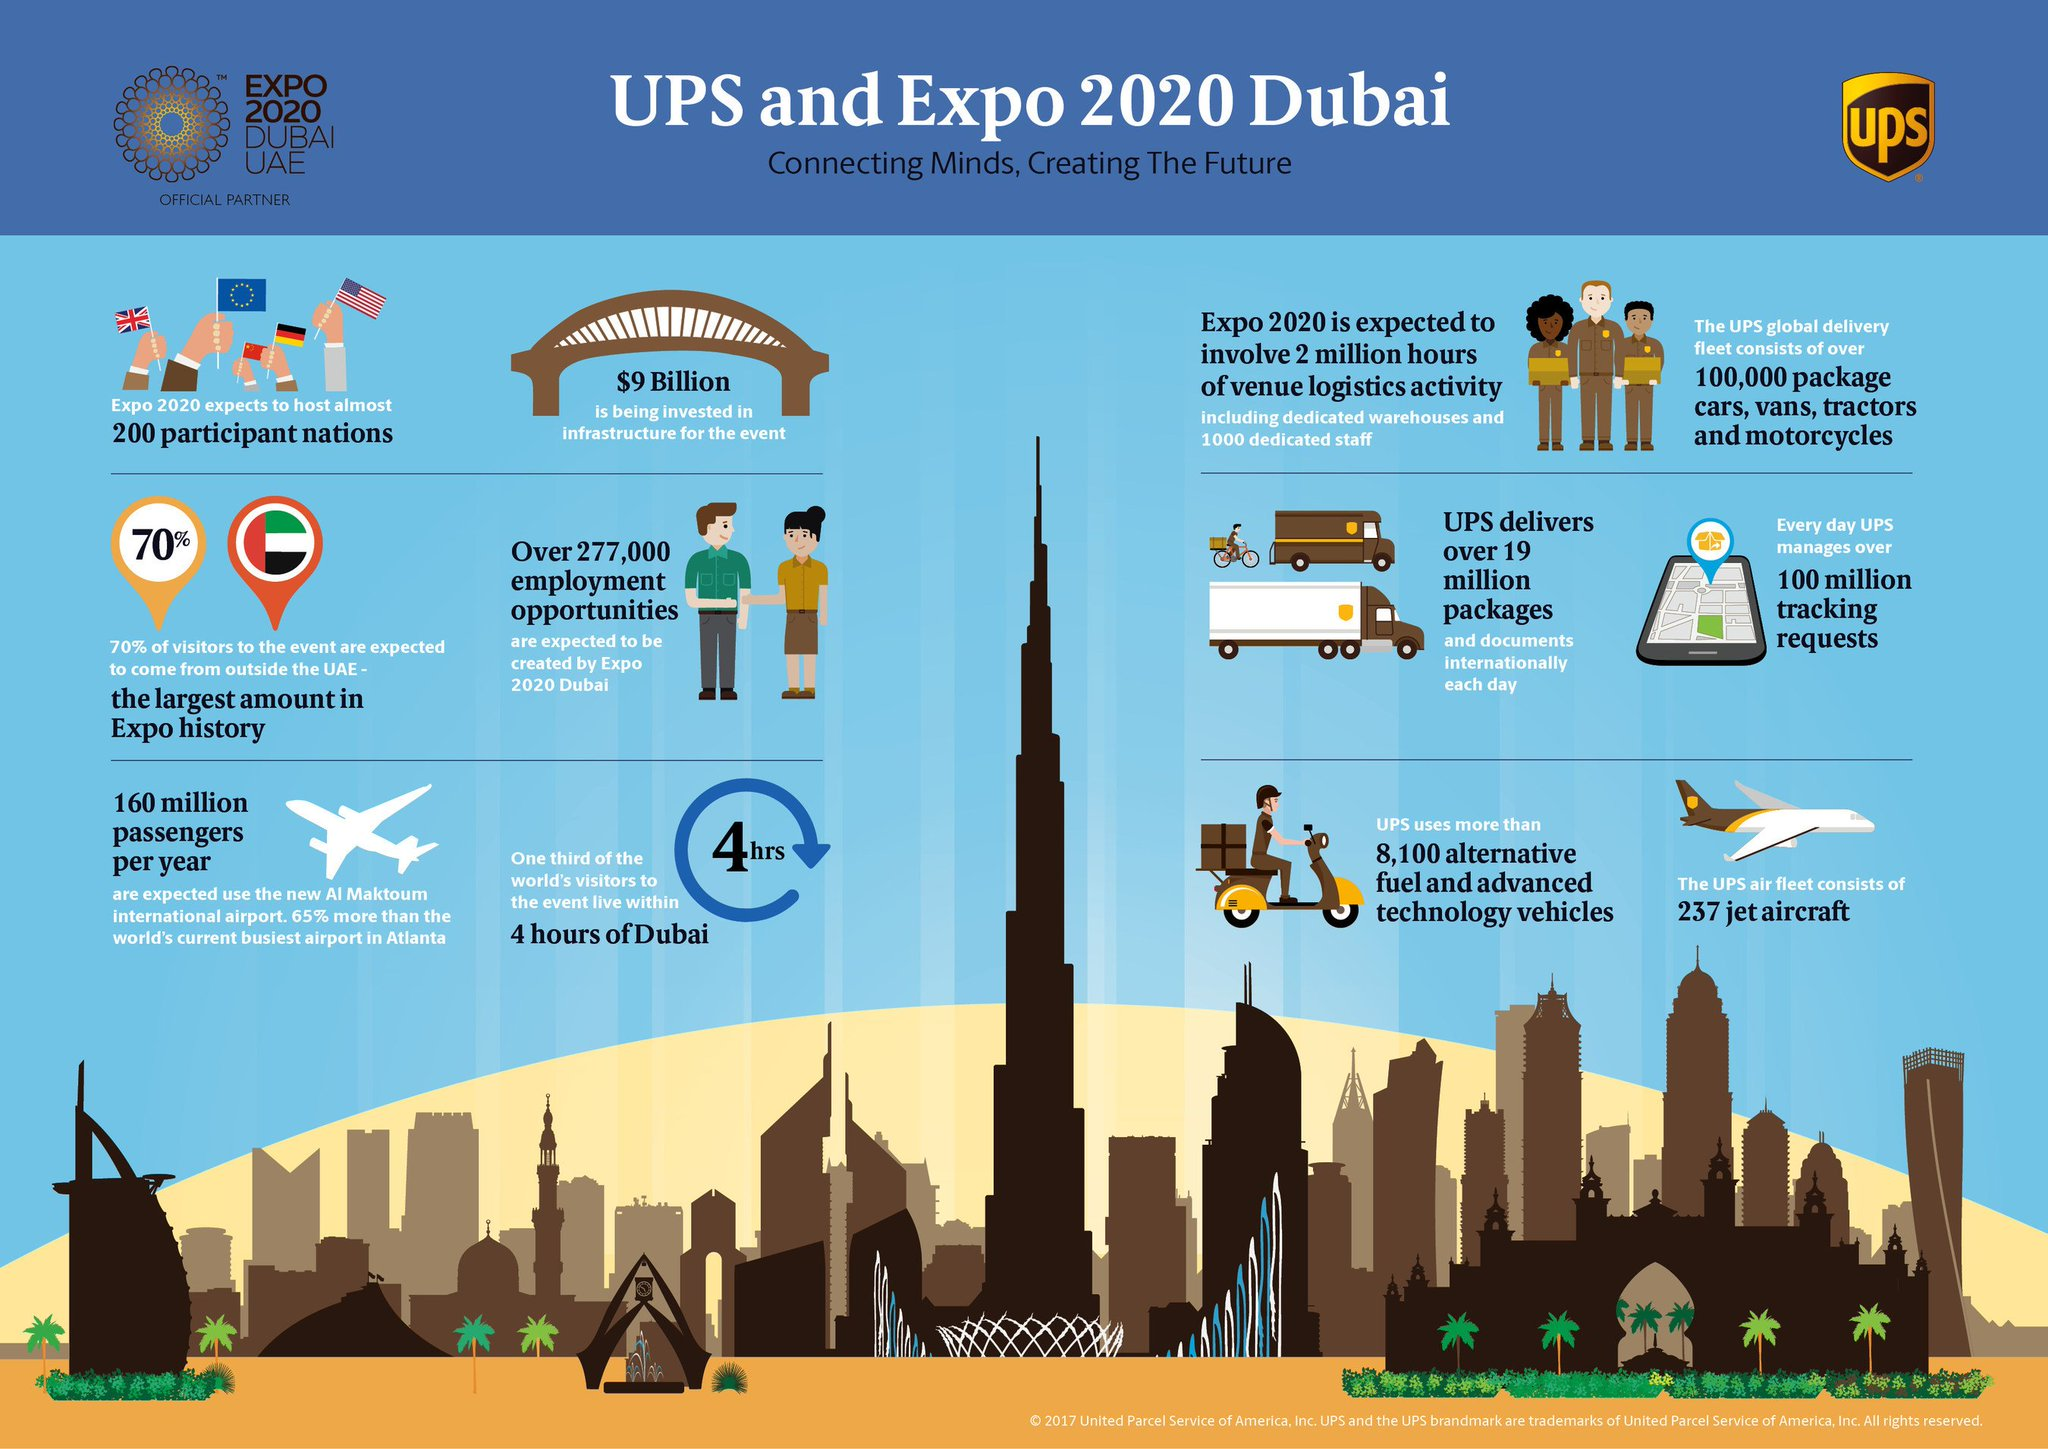 Expo 2020 Dubai expected to boost logistics industry